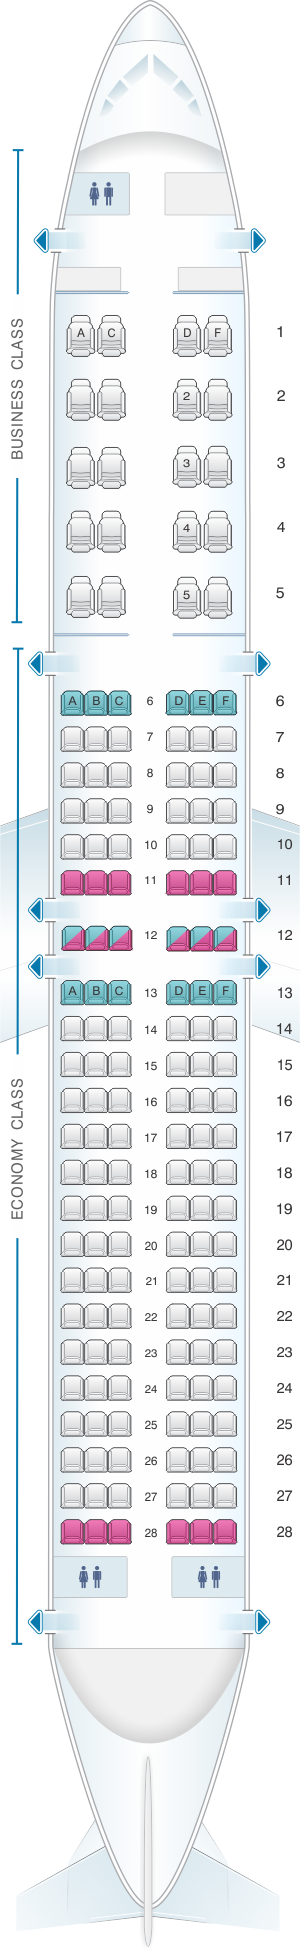 Seat map for Aeroflot Russian Airlines Boeing B737 800